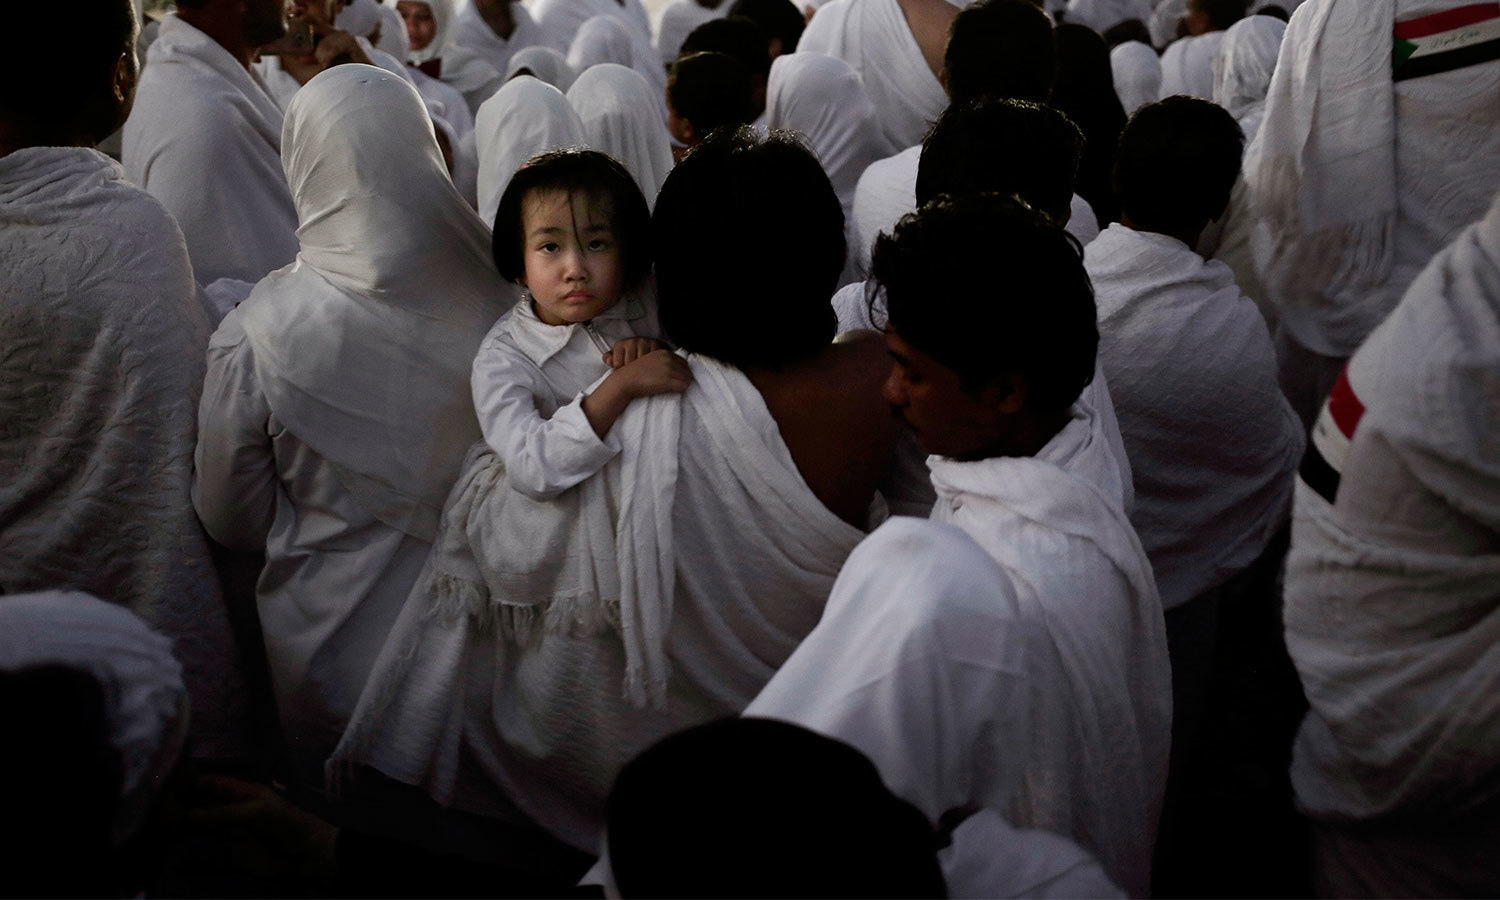 An Indonesian father carries his daughter through the crowd after reaching the top of a rocky hill known as Mountain of Mercy, on the Plain of Arafat. — AP